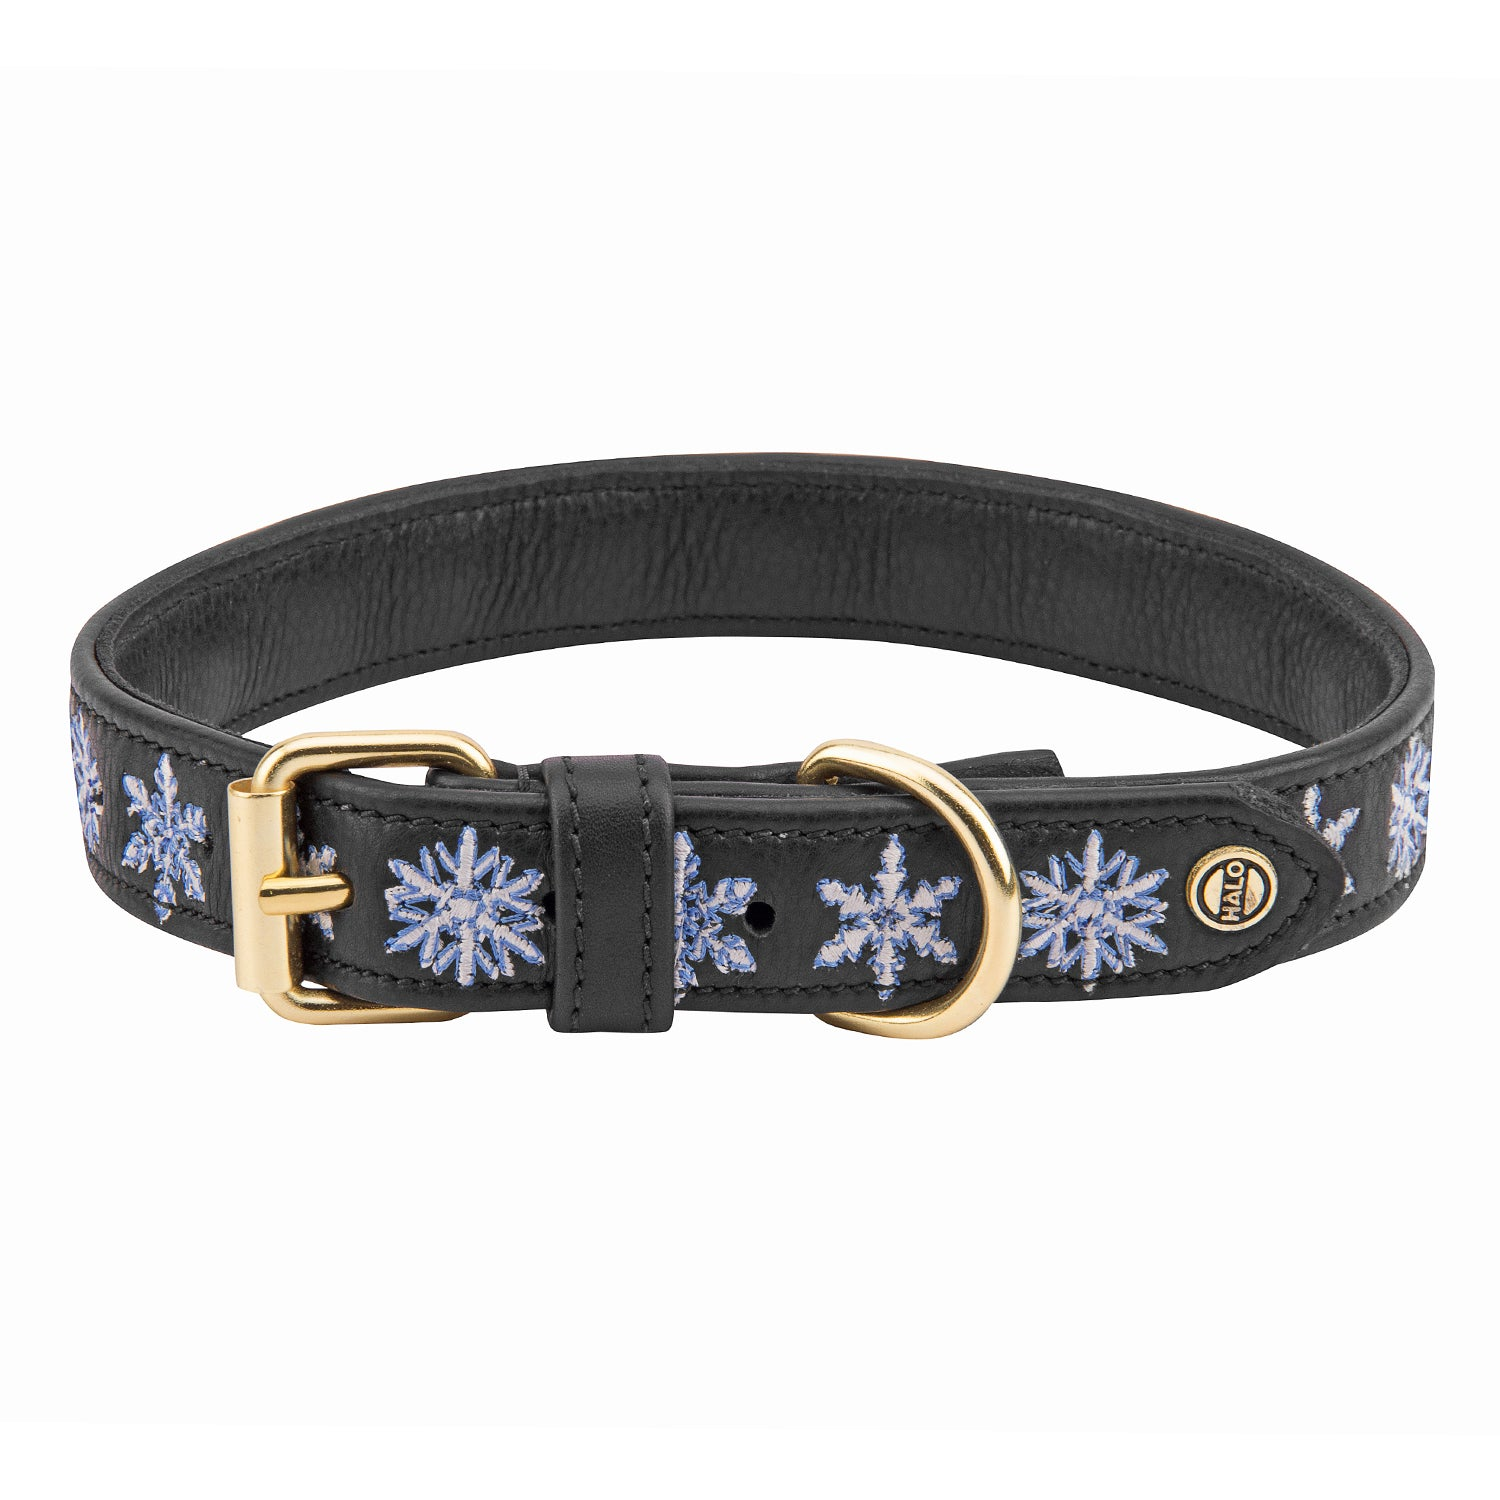 Halo Dog Collar - Leather with Snowflake Embroidery_2028